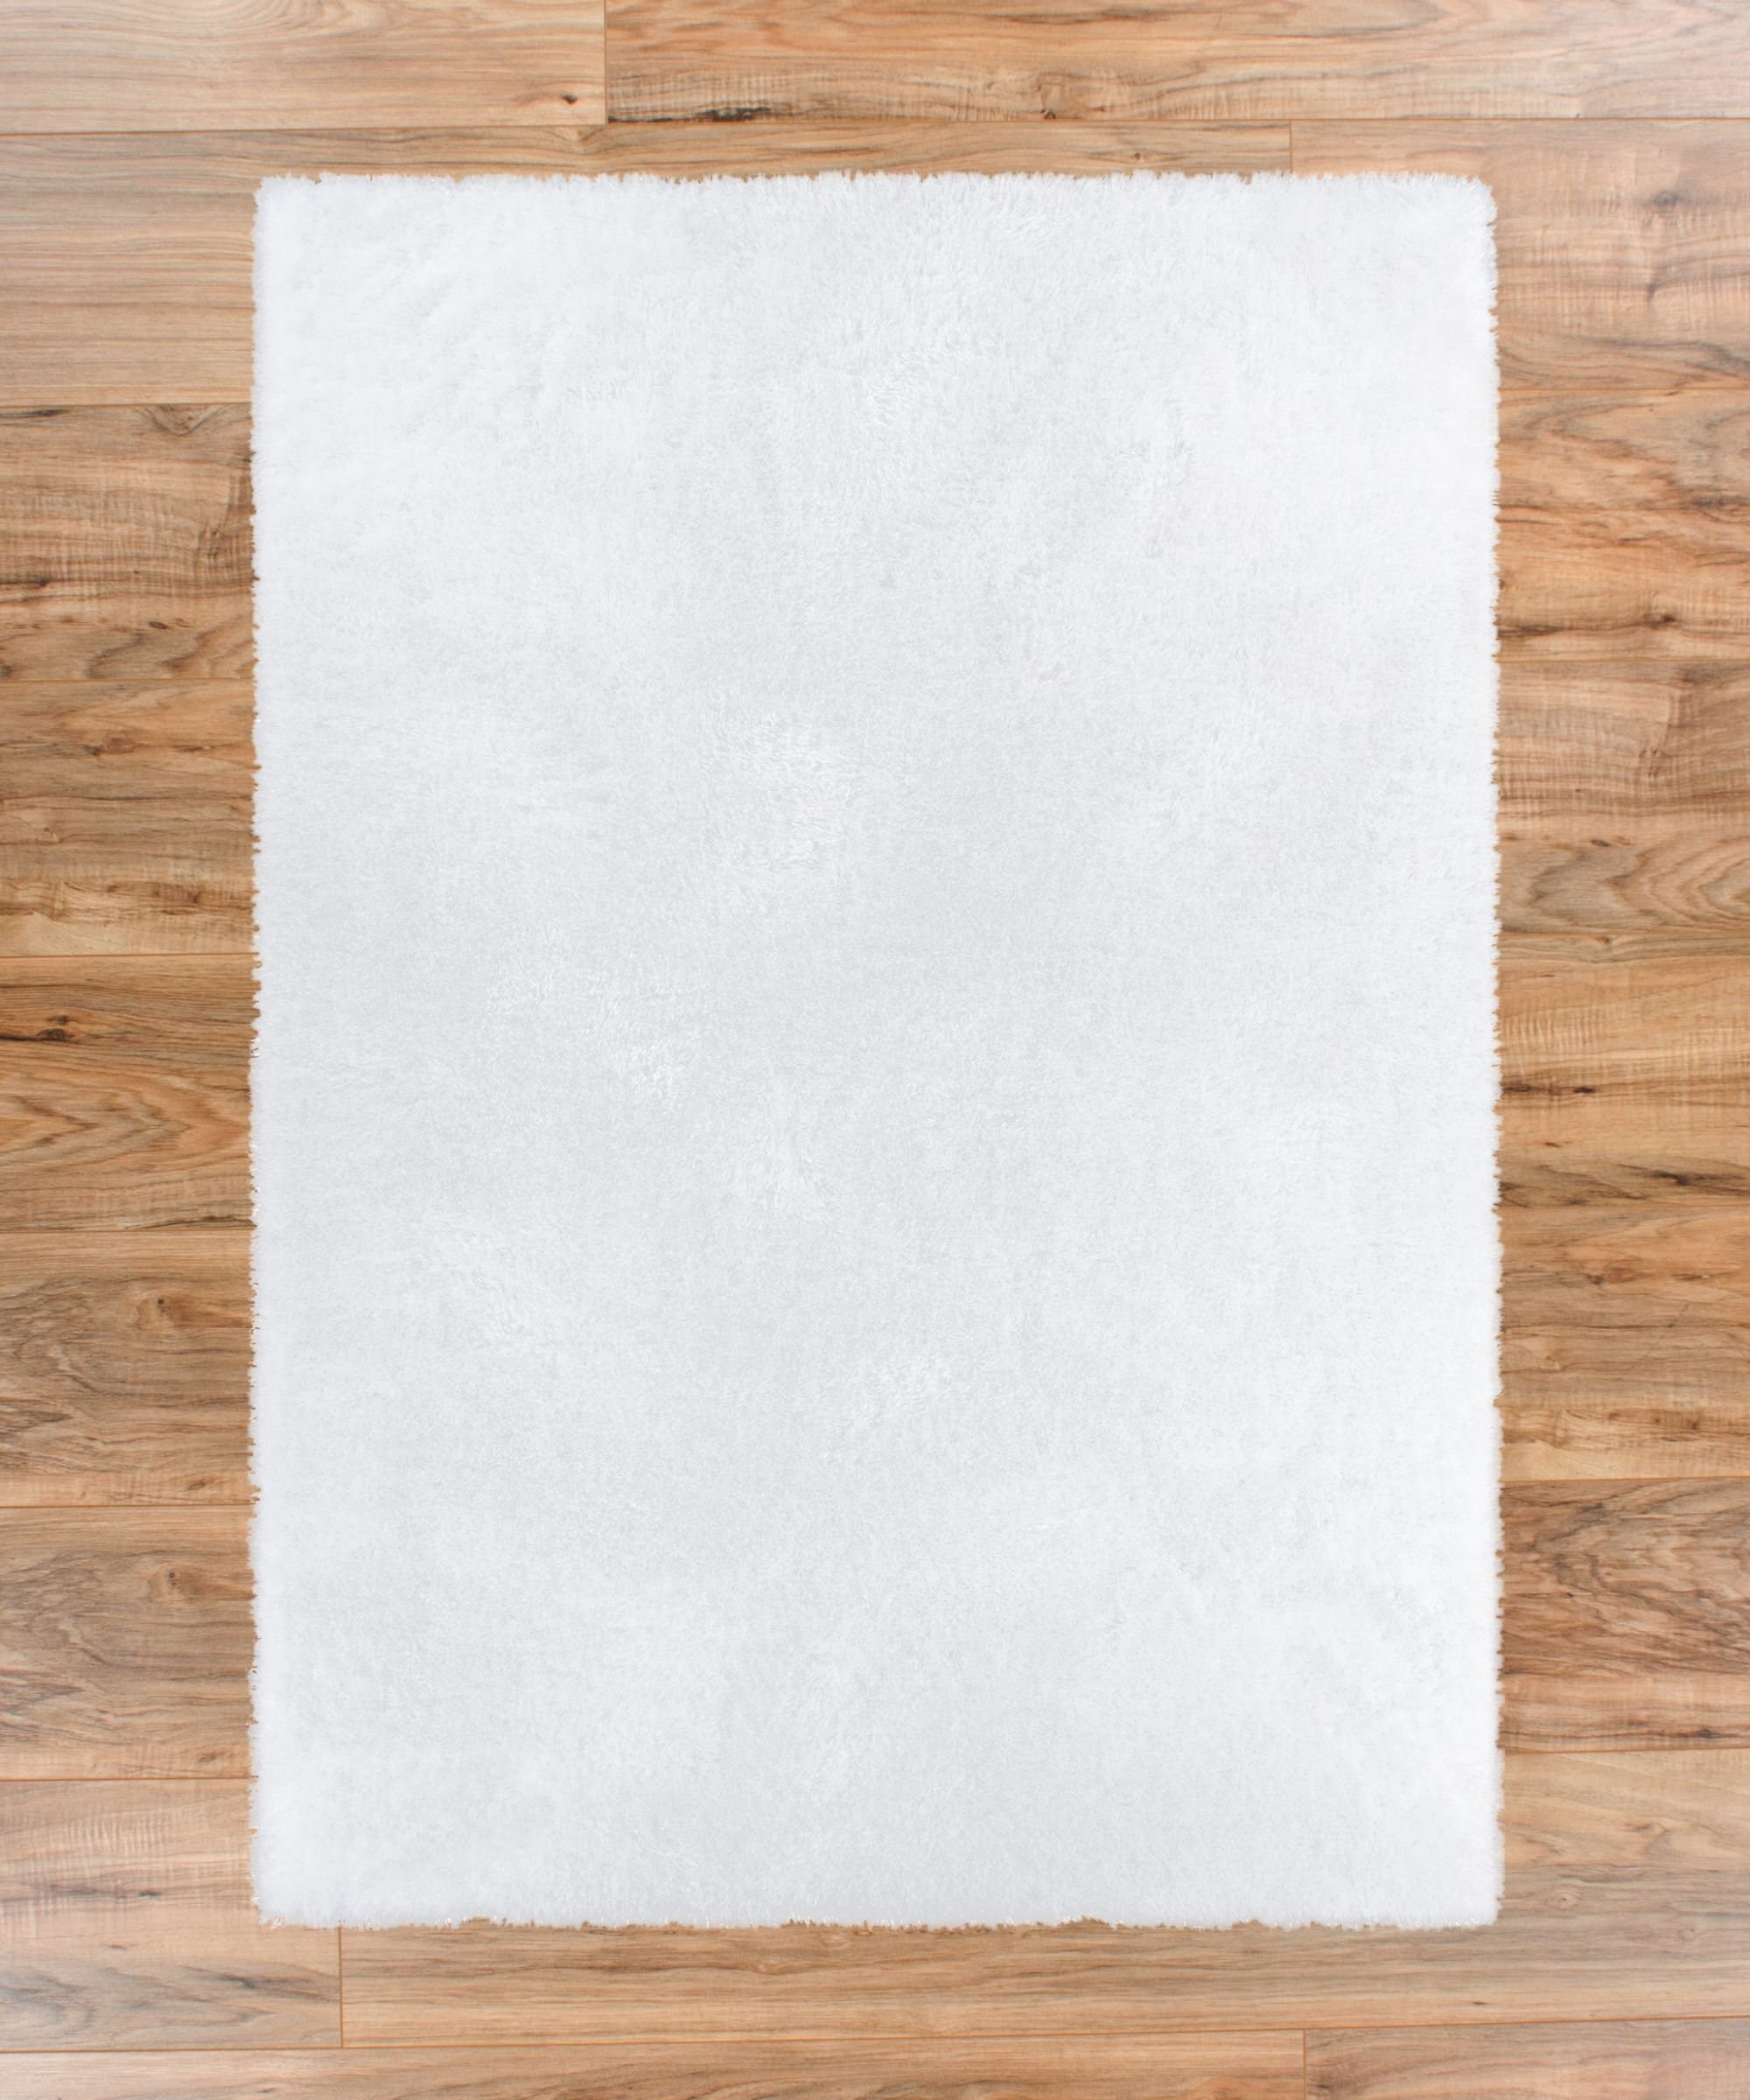 Shimmer Shag Snow White Solid Plain Modern Luster Ultra Thick Soft Plush Area Rug 7 x 10 ( 6'7'' x 9'10'' ) Contemporary Retro Polyester Textured 2'' Pile Yarn Easy Clean Stain Fade Resistant by Well Woven (Image #3)